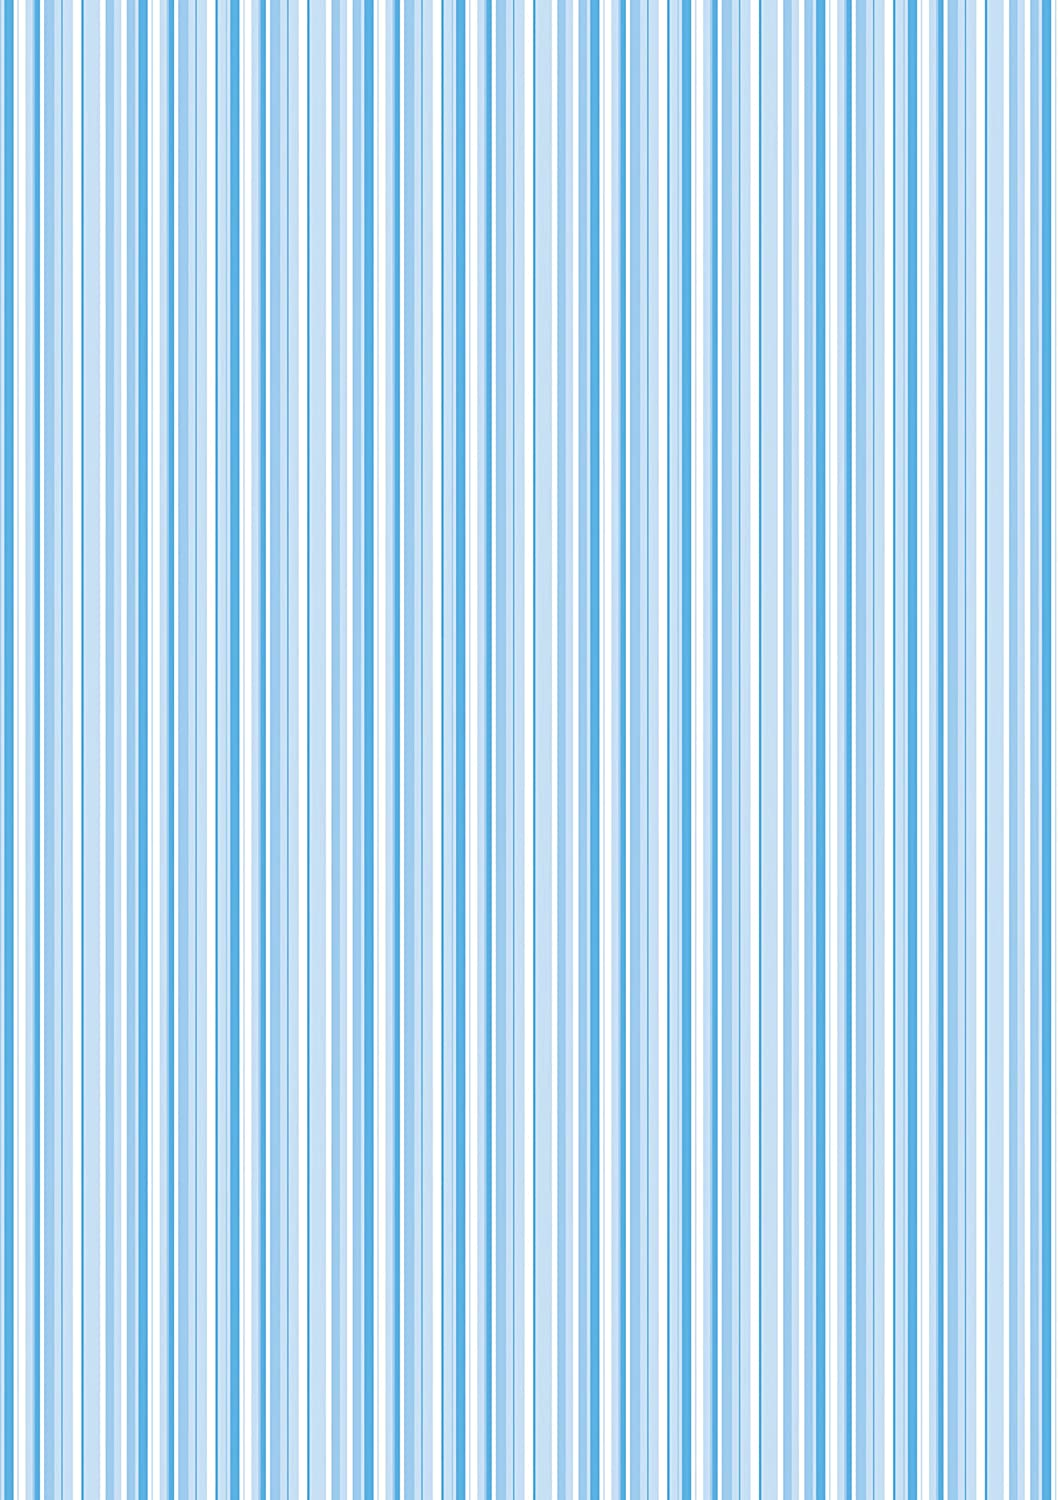 1 X A4 Printed Blue And White Striped Wallpaper Decor Icing Sheet